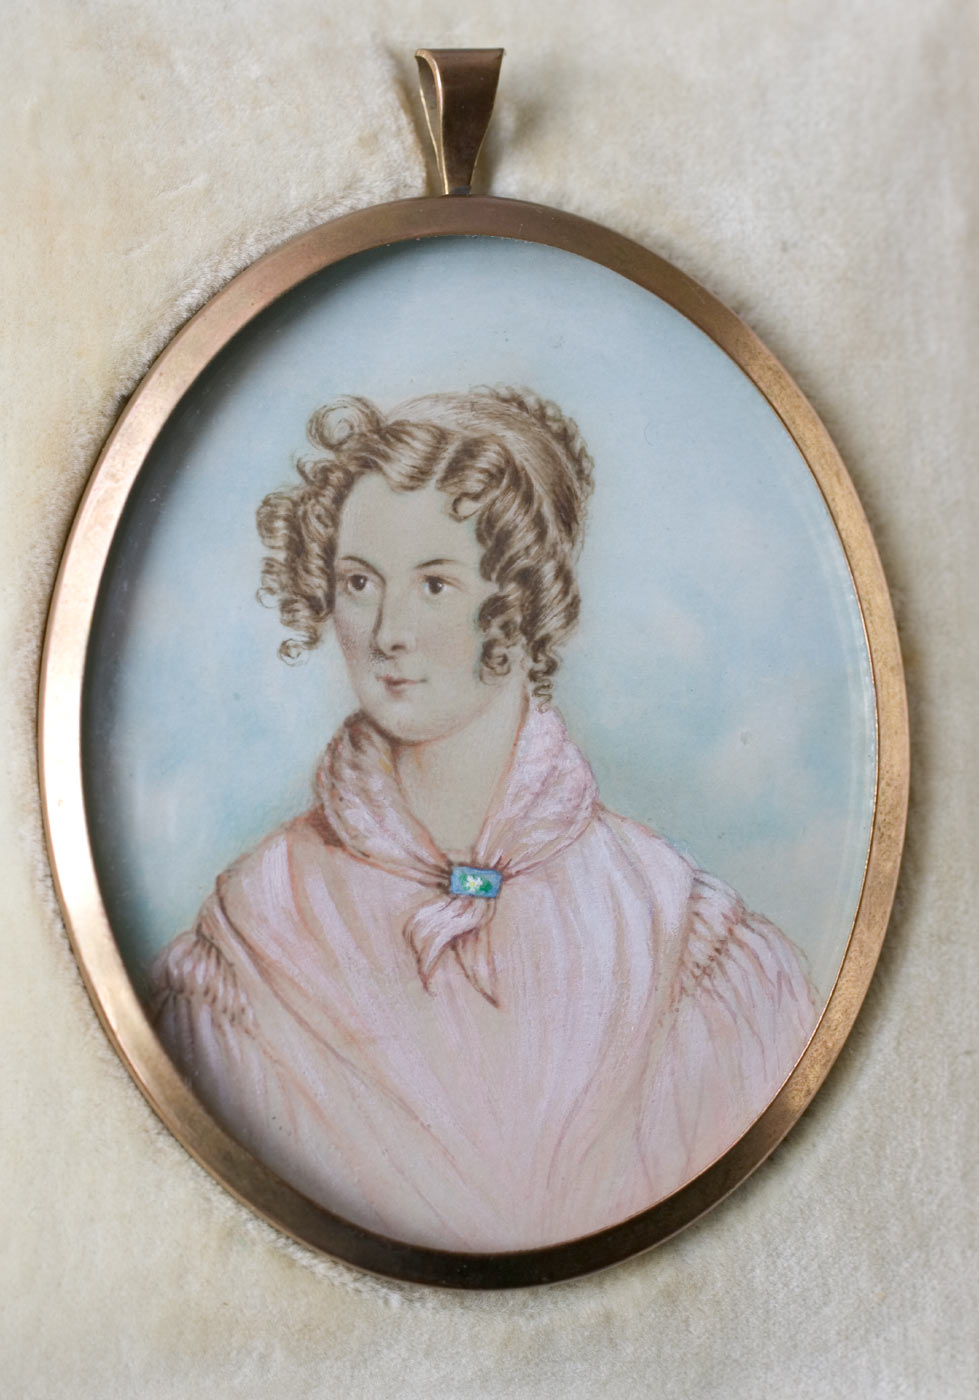 Miniature portrait in an oval frame of Ann Deane as a young woman showing ringlets around her face and a head band at the back of her hair, wearing a pink coloured top with puff sleeves and a necktie collar in the same colour held together with a blue clasp with white design in the centre front. - click to view larger image